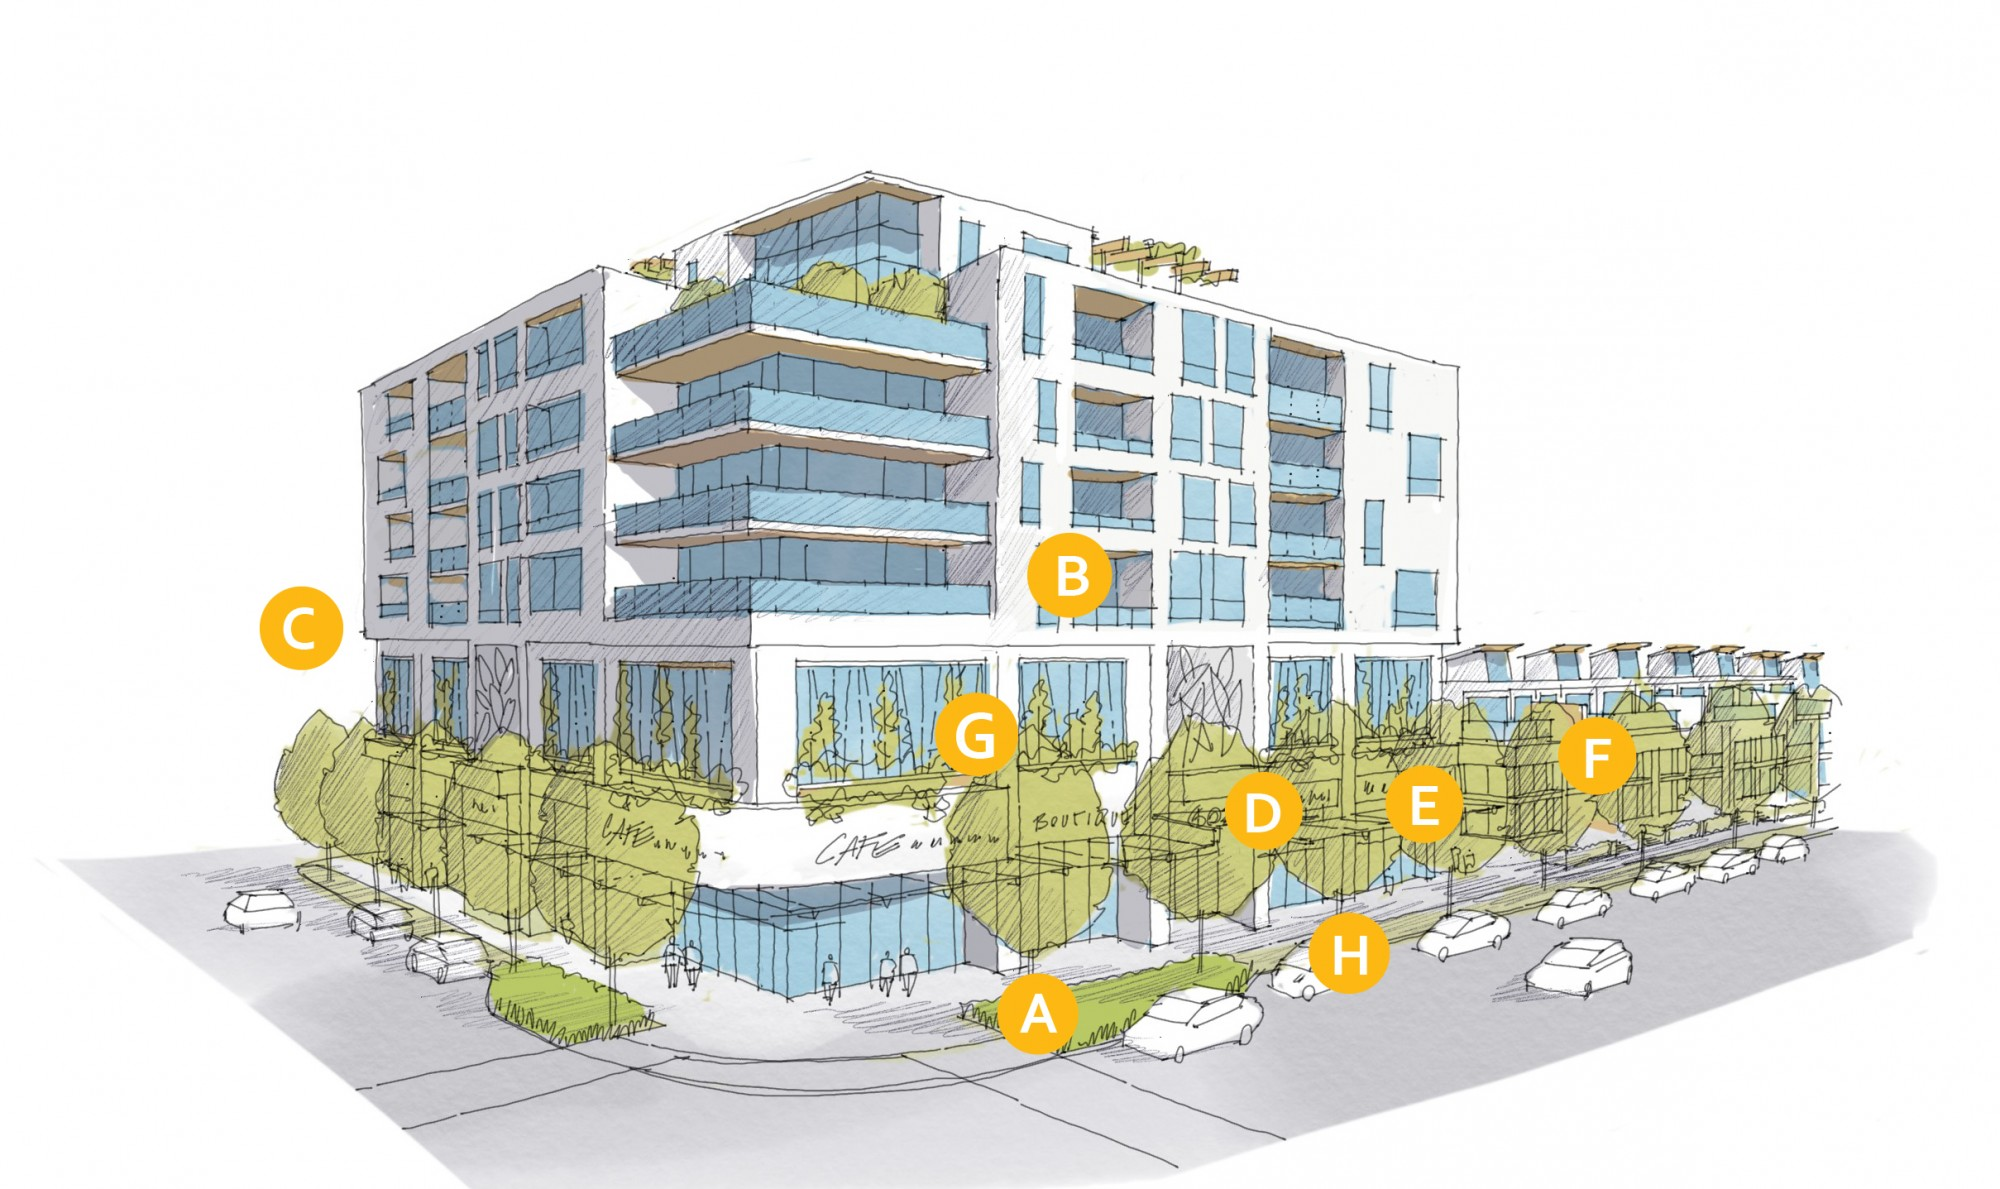 2040 OCP - Low Mid Rise Residential Key Guidelines